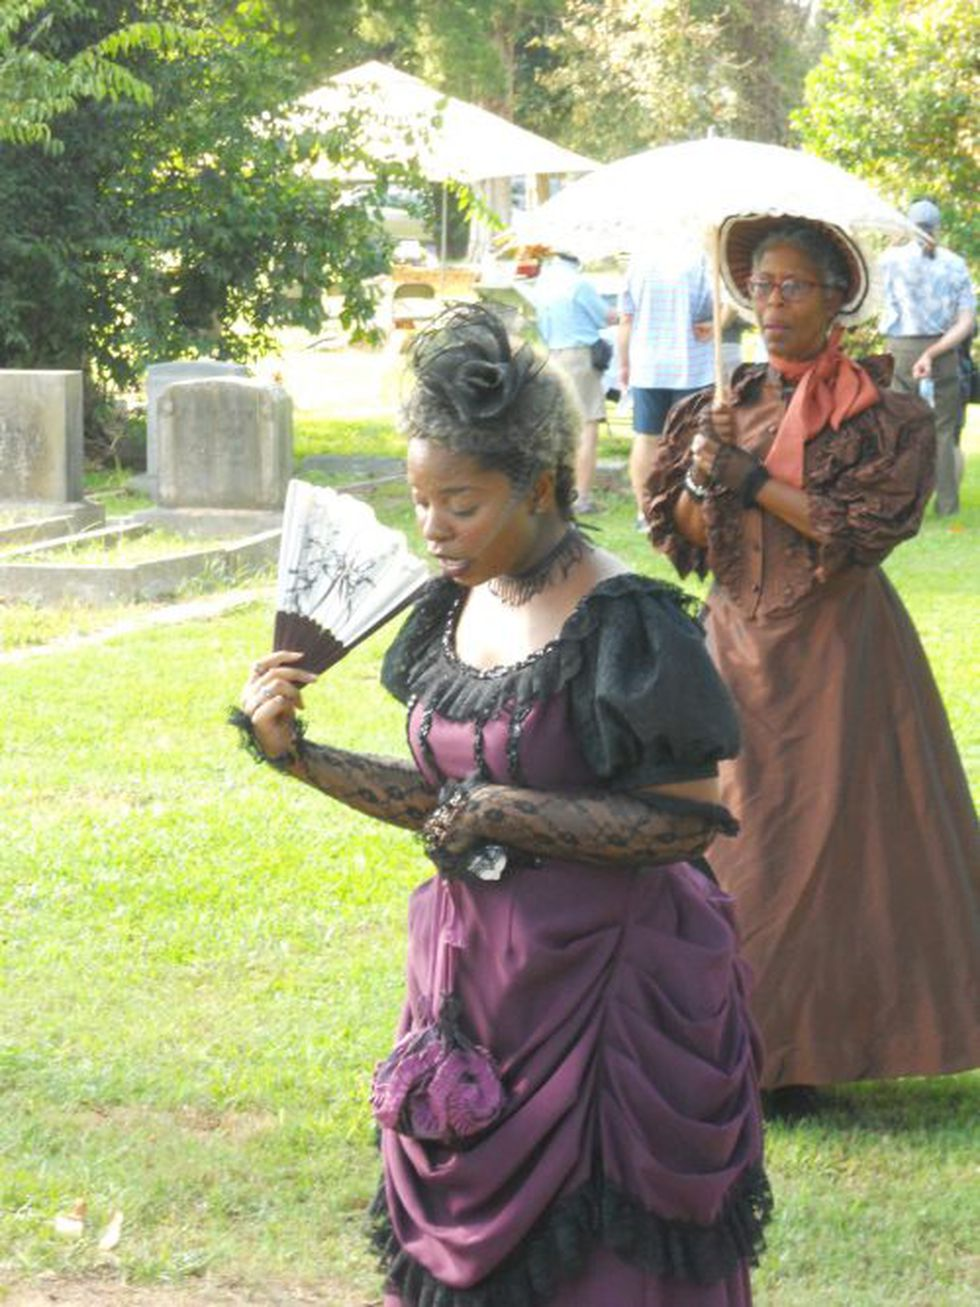 Historic Augusta is holding its only in-person event this fall, the Walk with the Spirits.